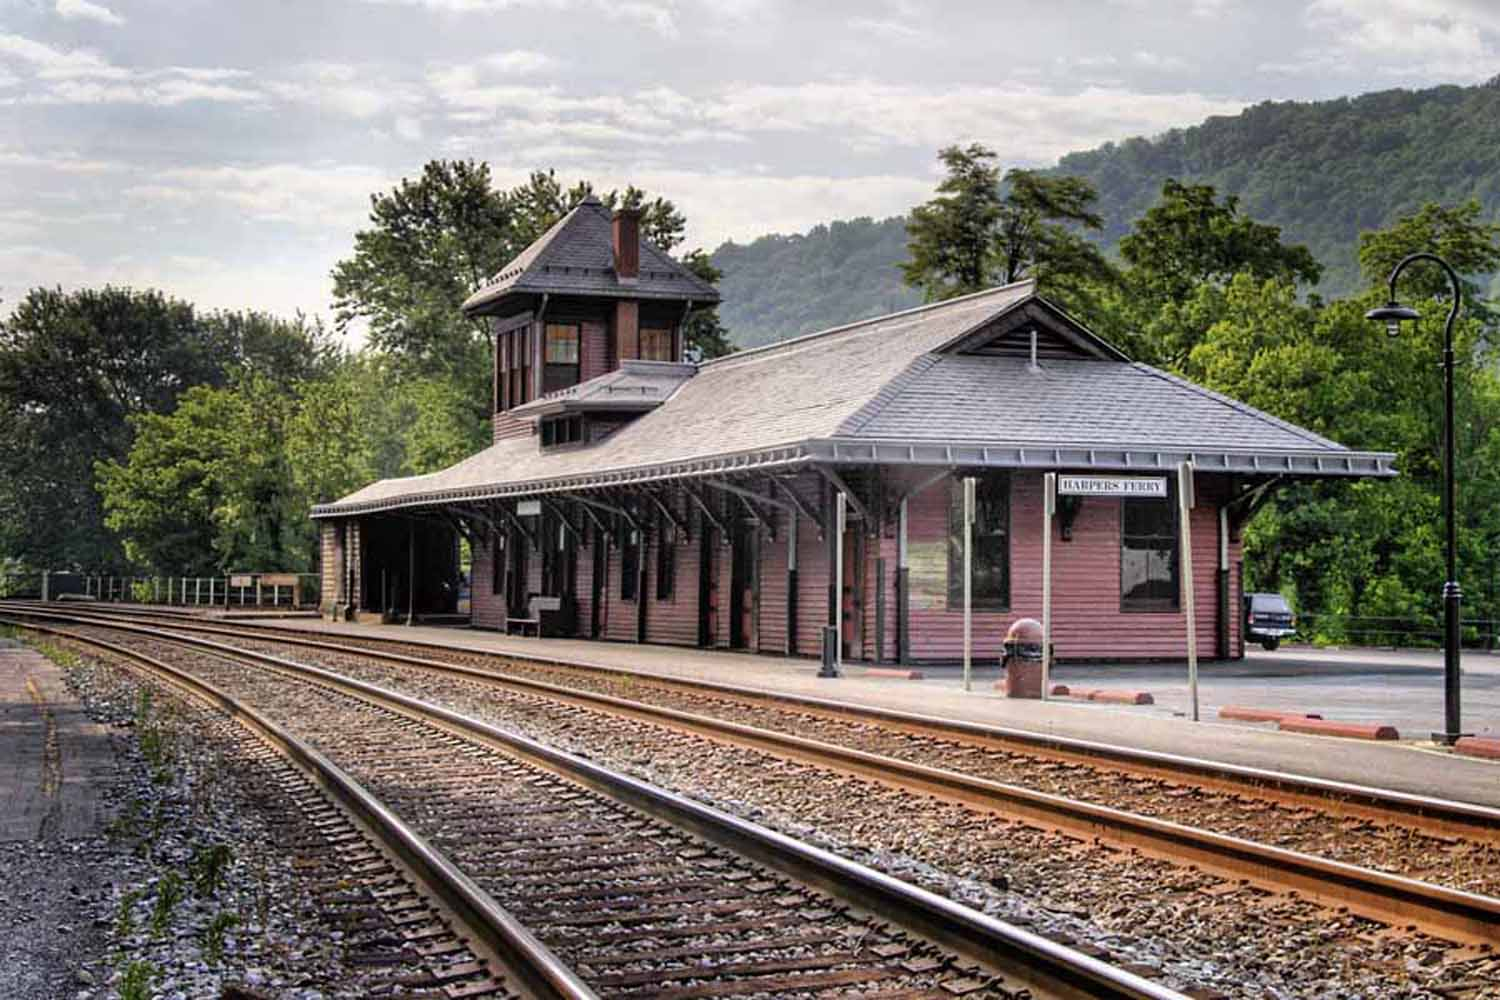 The restored train station today. Courtesy of the Harpers Ferry-Bolivar Historic Town Foundation.